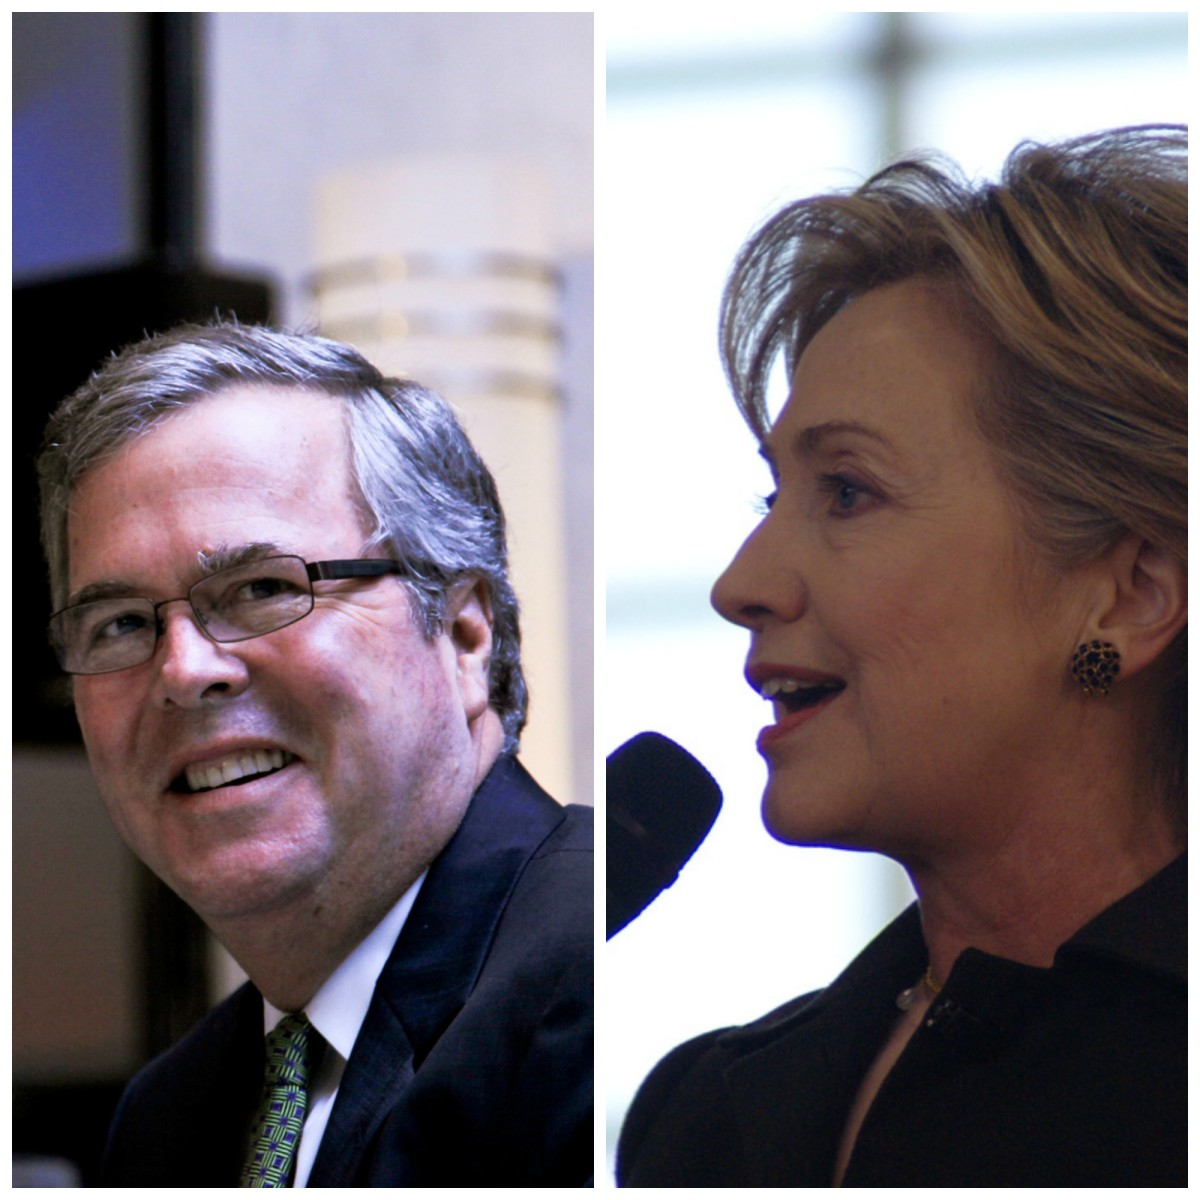 From left: Jeb Bush. (The World Affairs Council of Philadelphia/Flickr); Hillary Clinton. (Marc Nozell/Flickr)